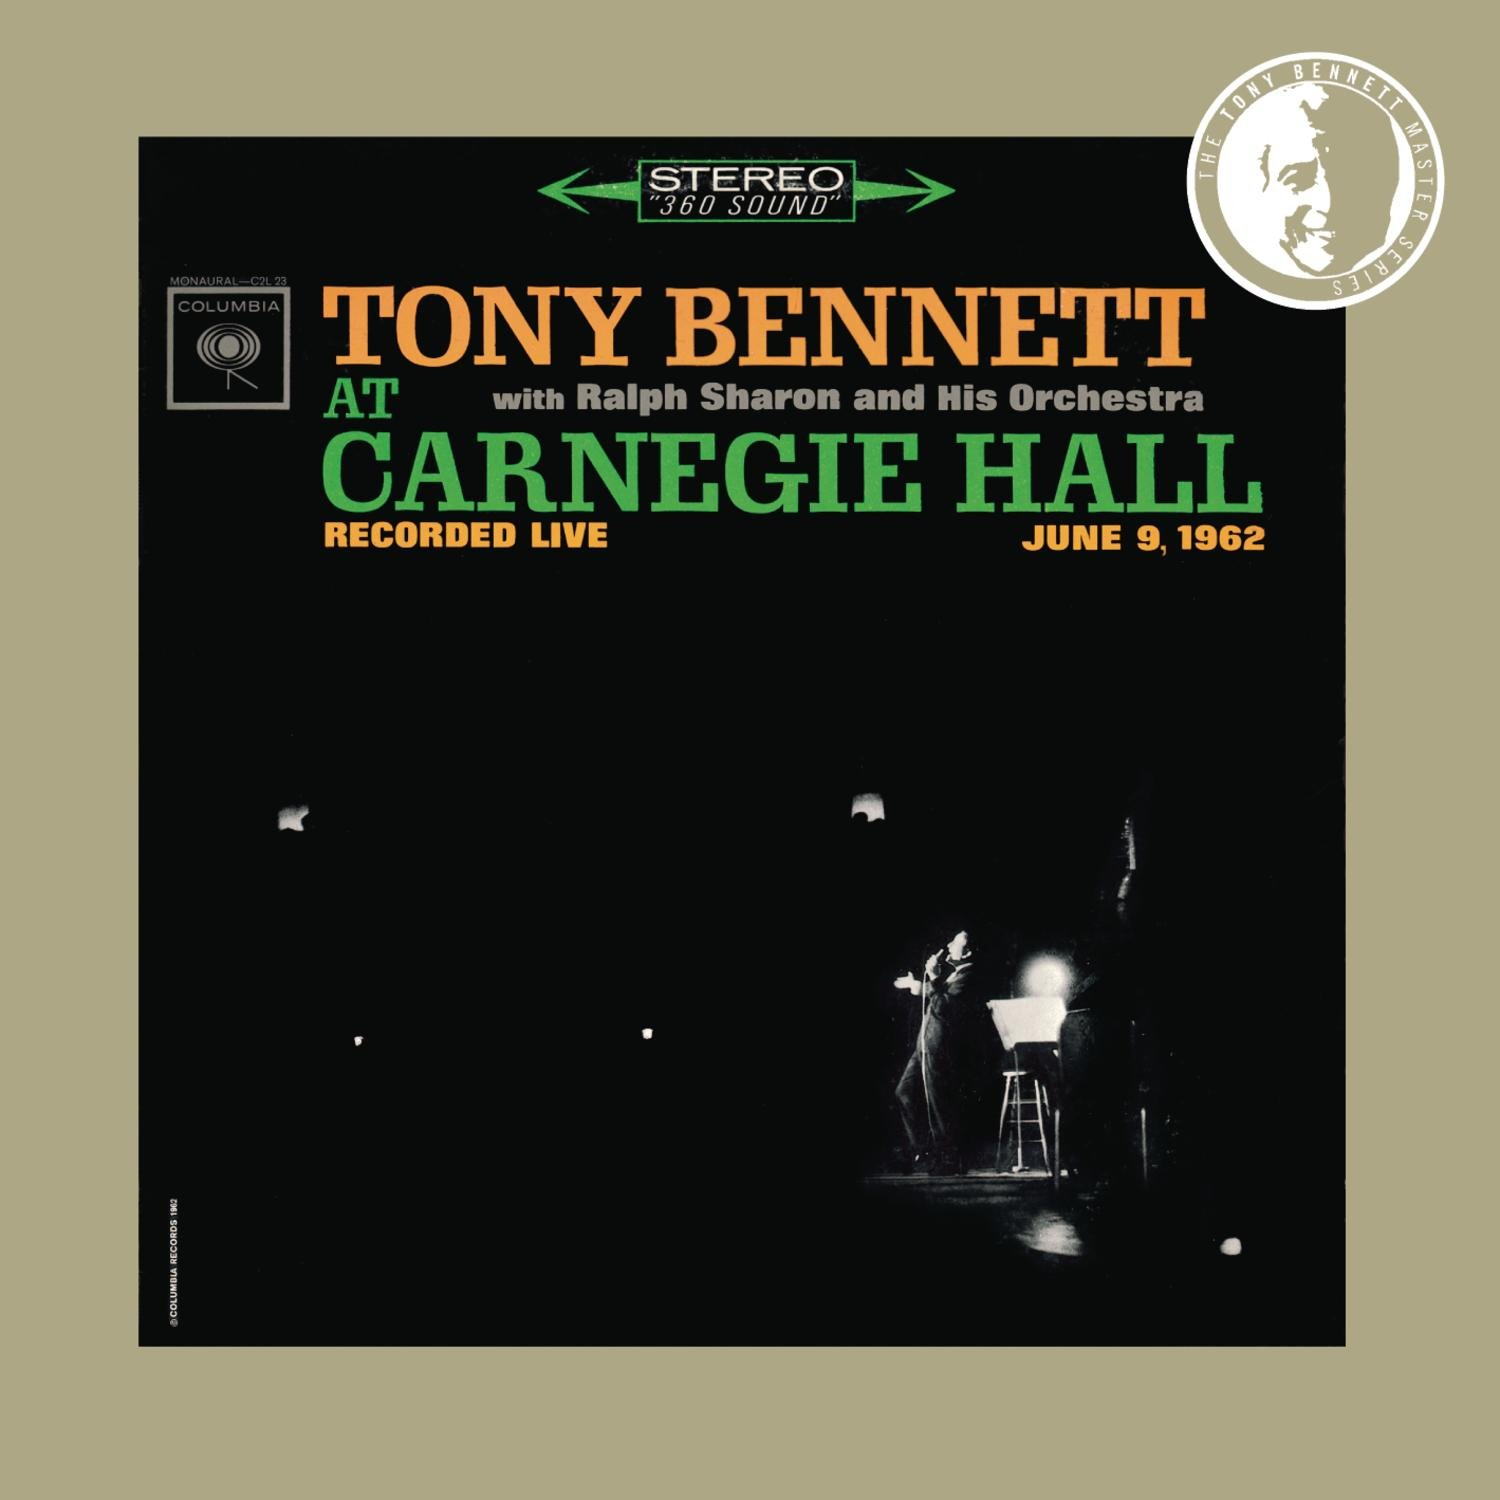 Tony Bennett at Carnegie Hall June 9 1962: Complete Concert by Columbia